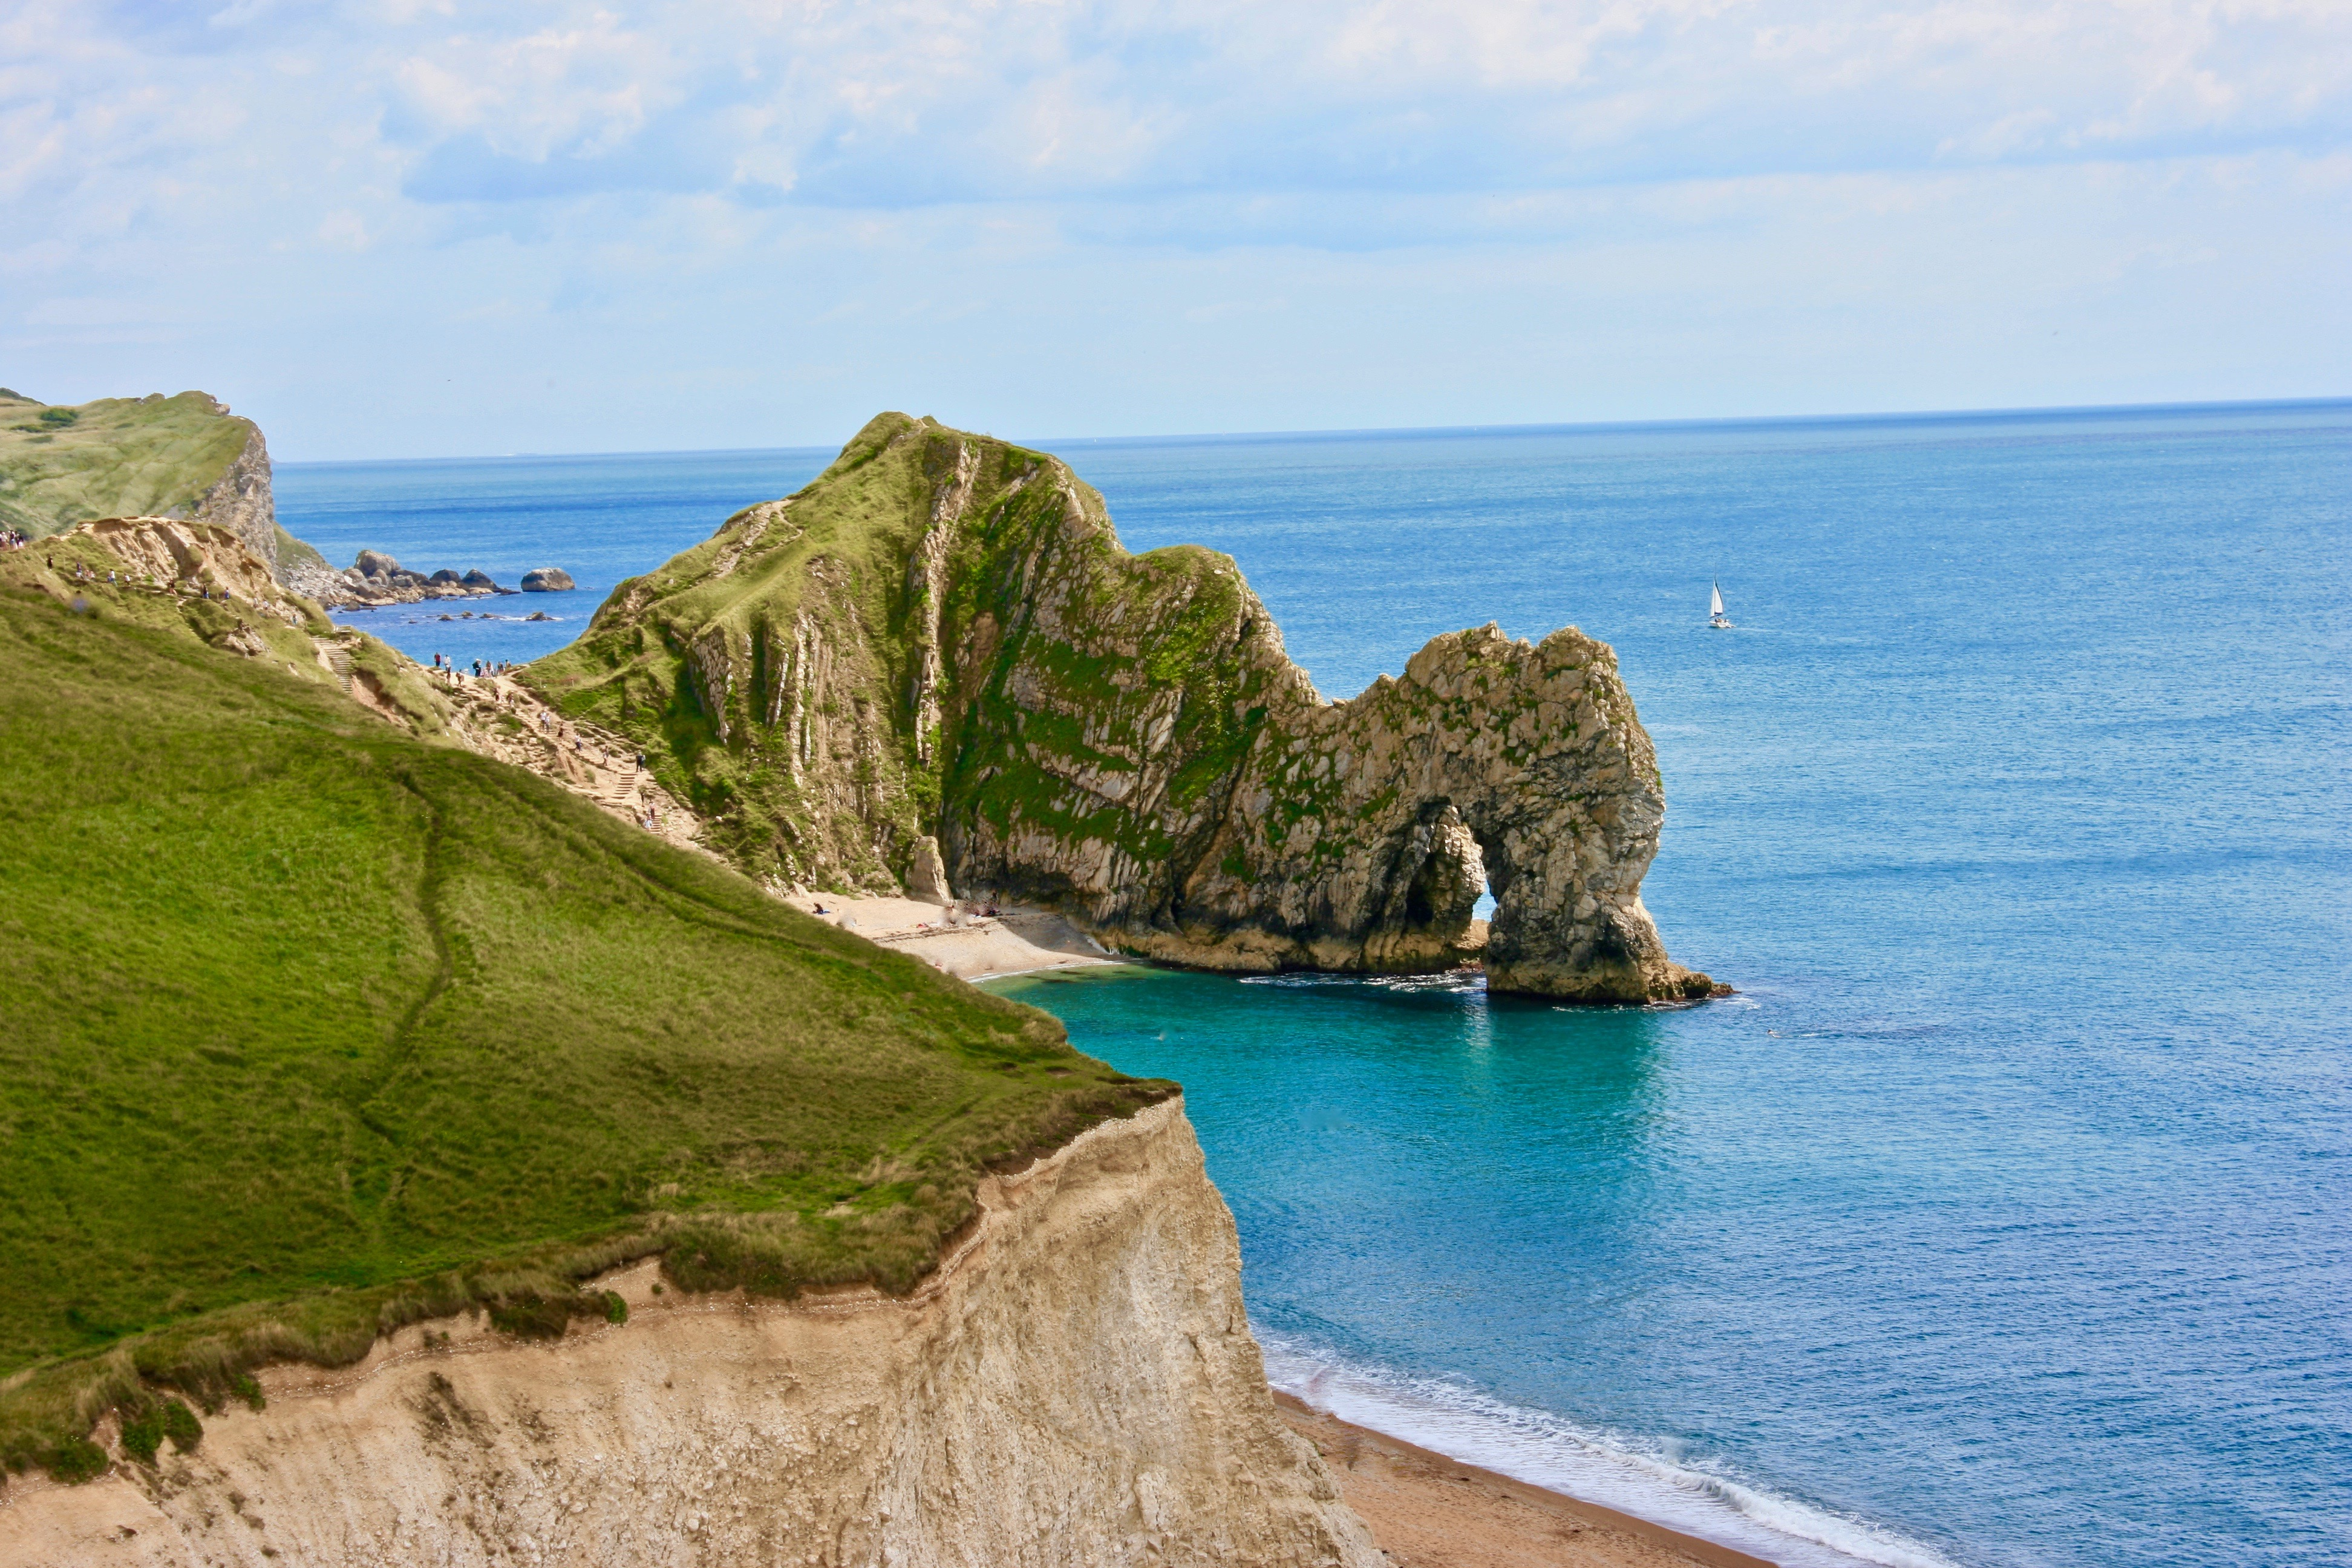 Road trip to Durdle Door by She Who Wanders